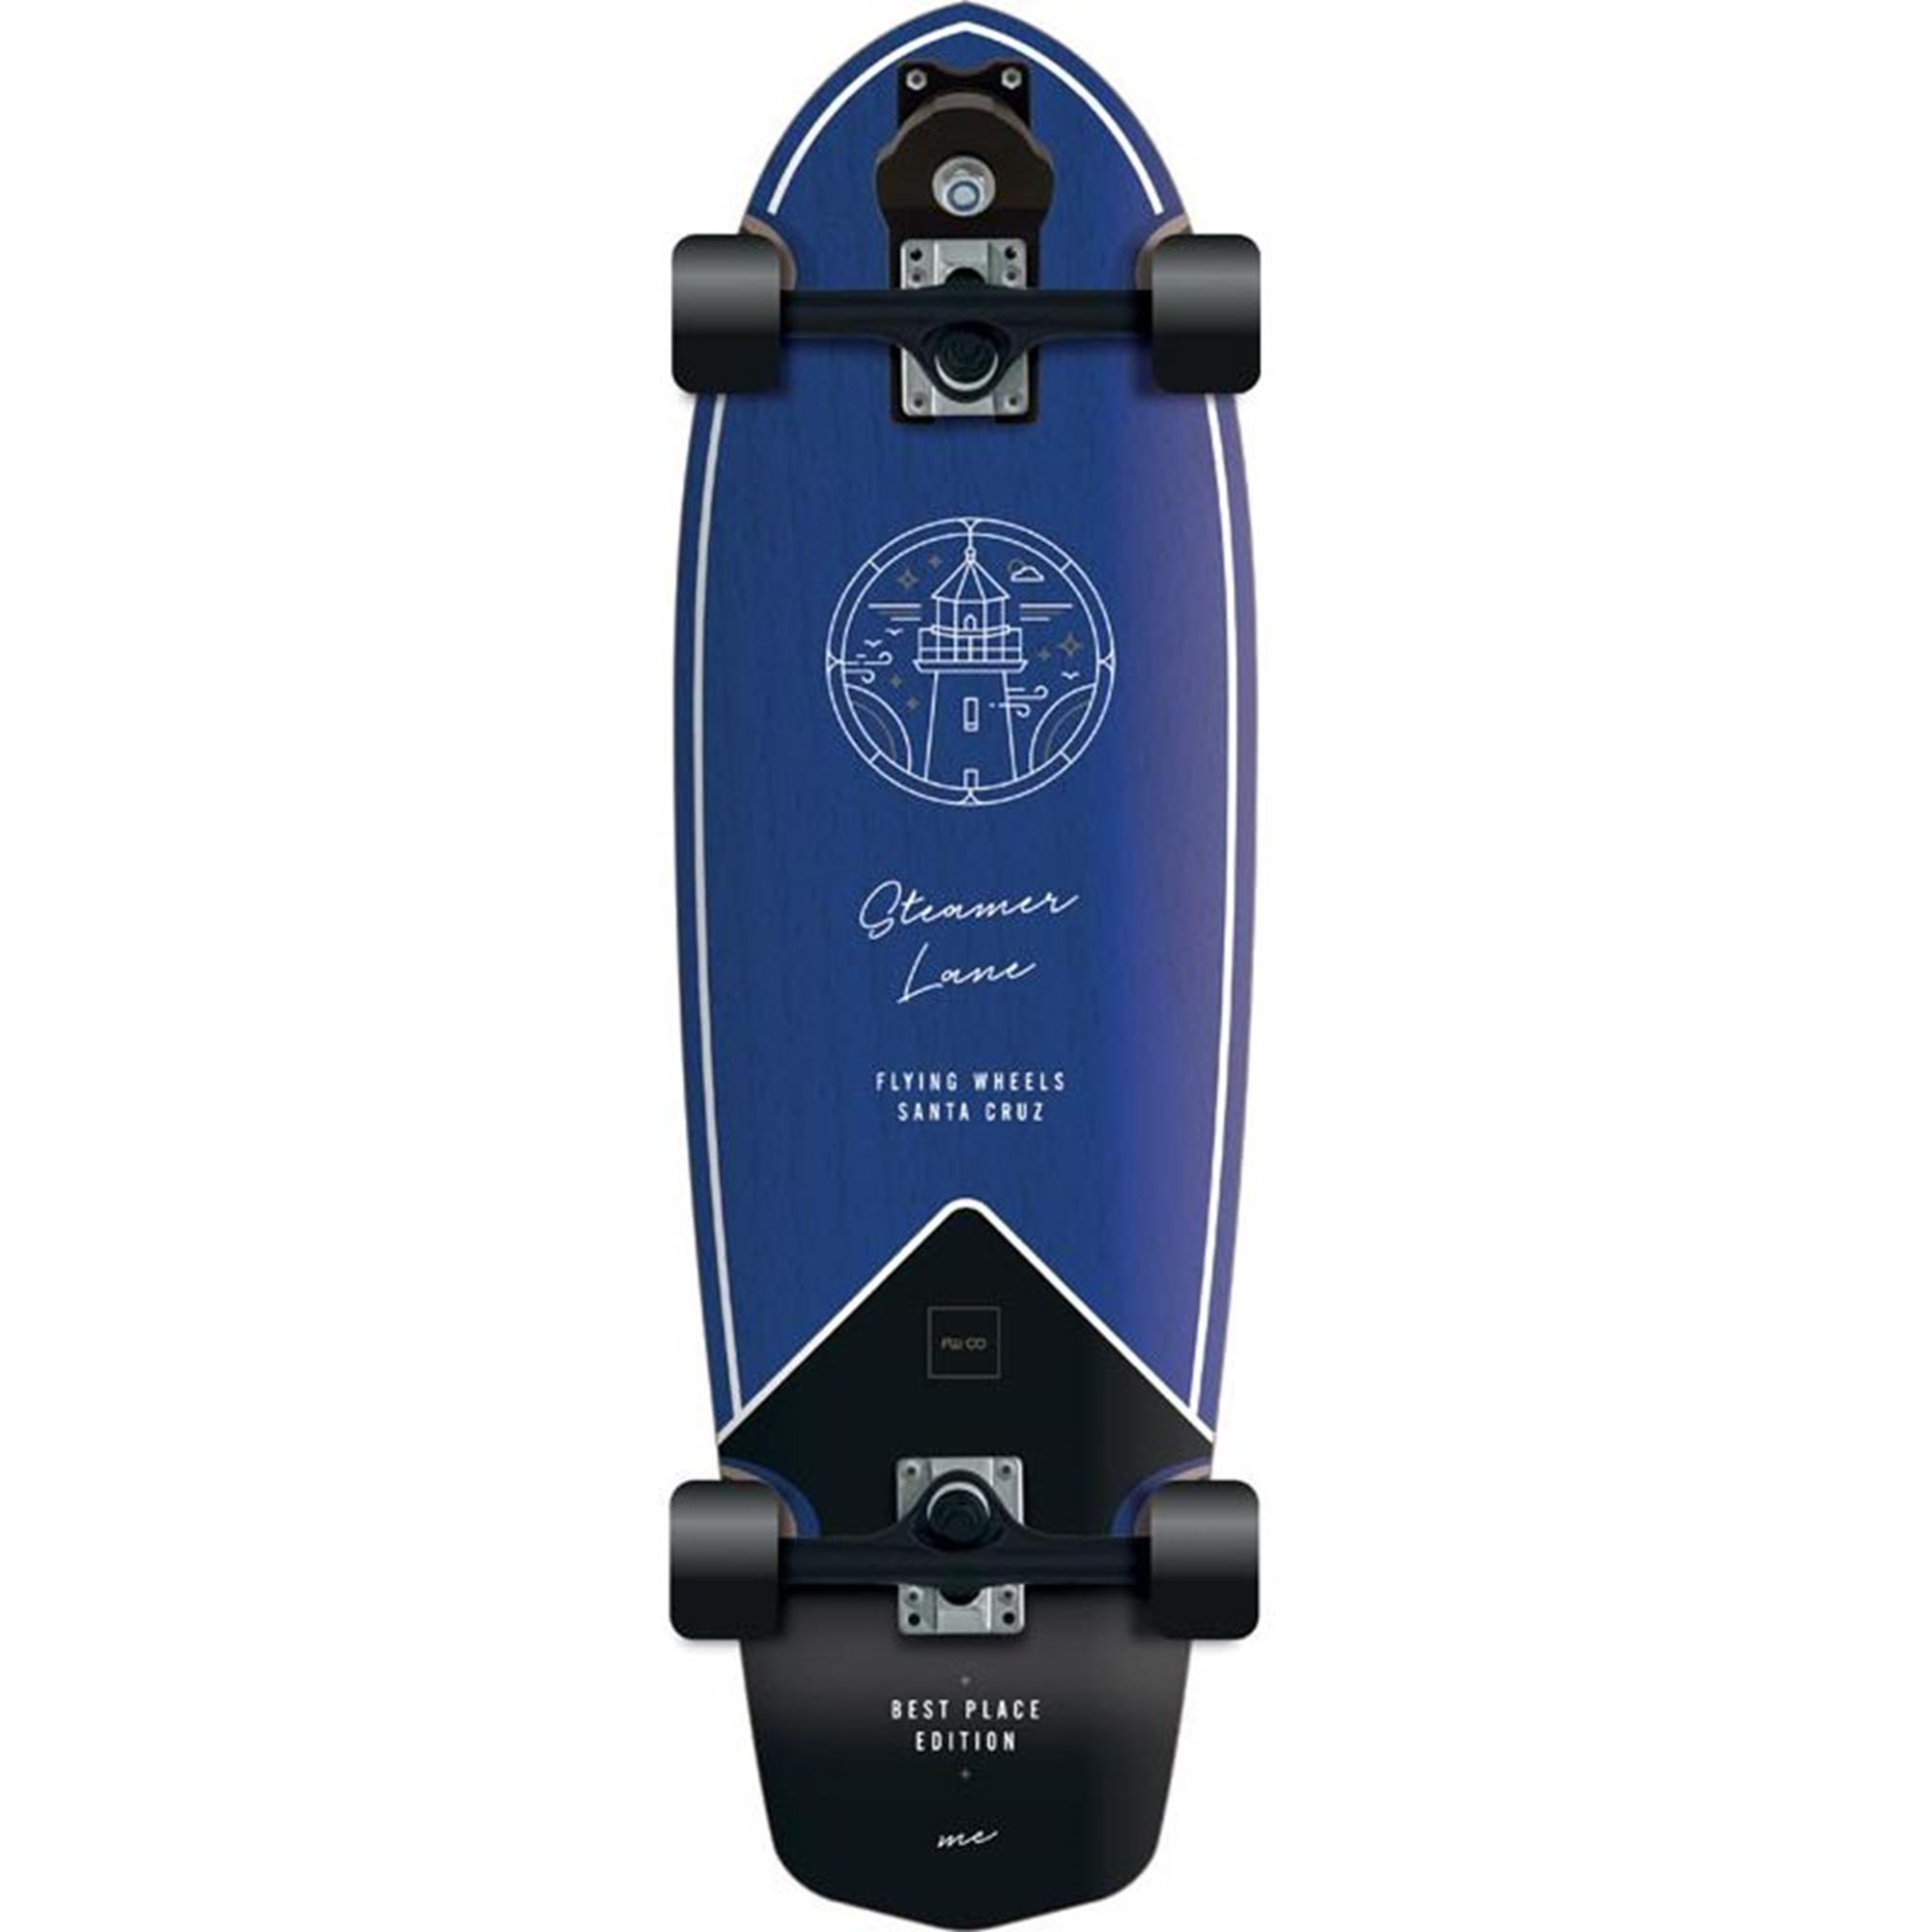 FLYING WHEELS Surf Skateboard 31,5 Lane Best Place Edition